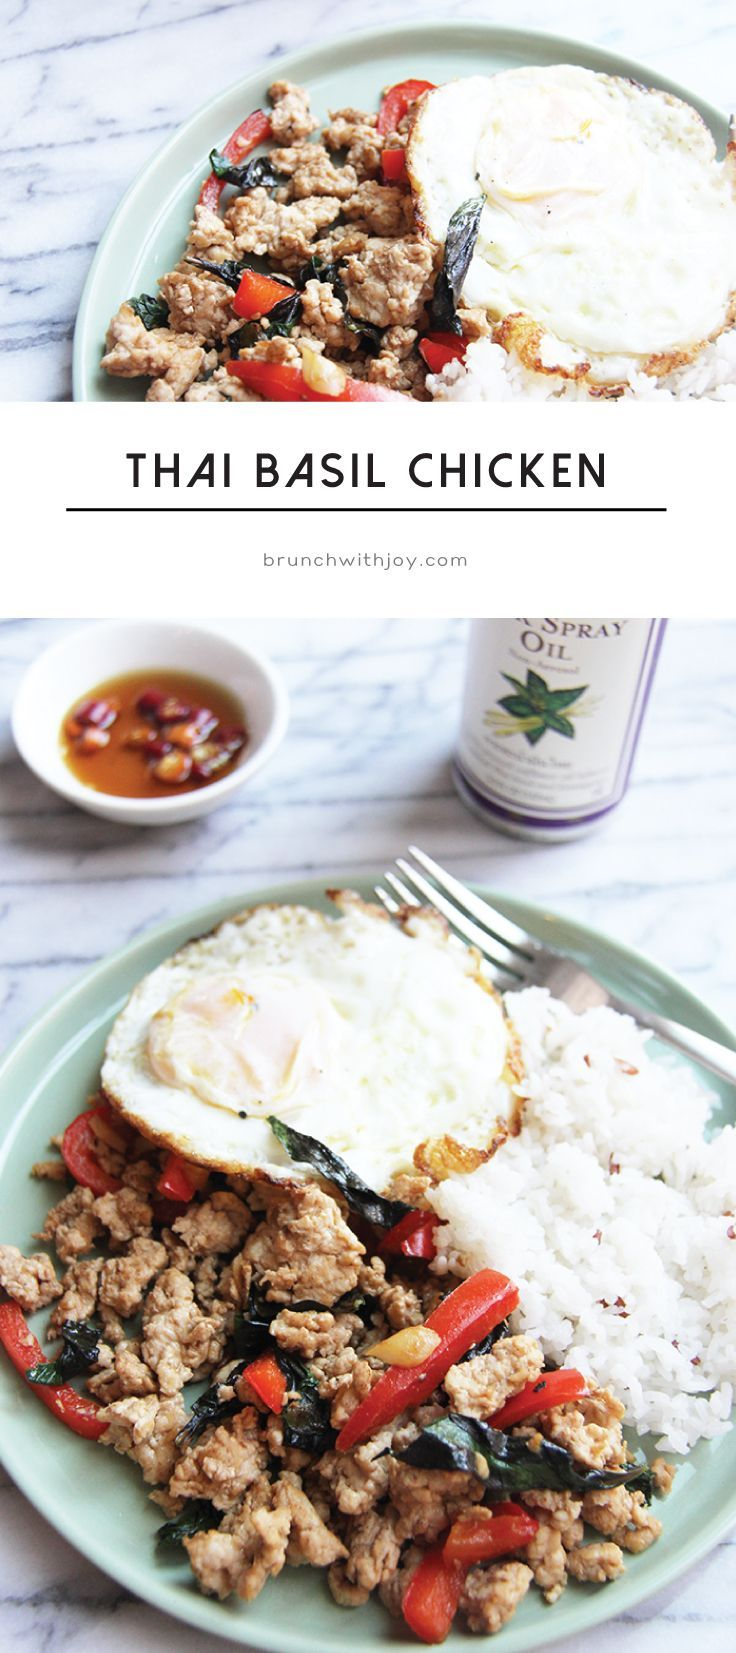 This flavorful Thai dish is full of comfort and packed with tradition #LaTourangelle